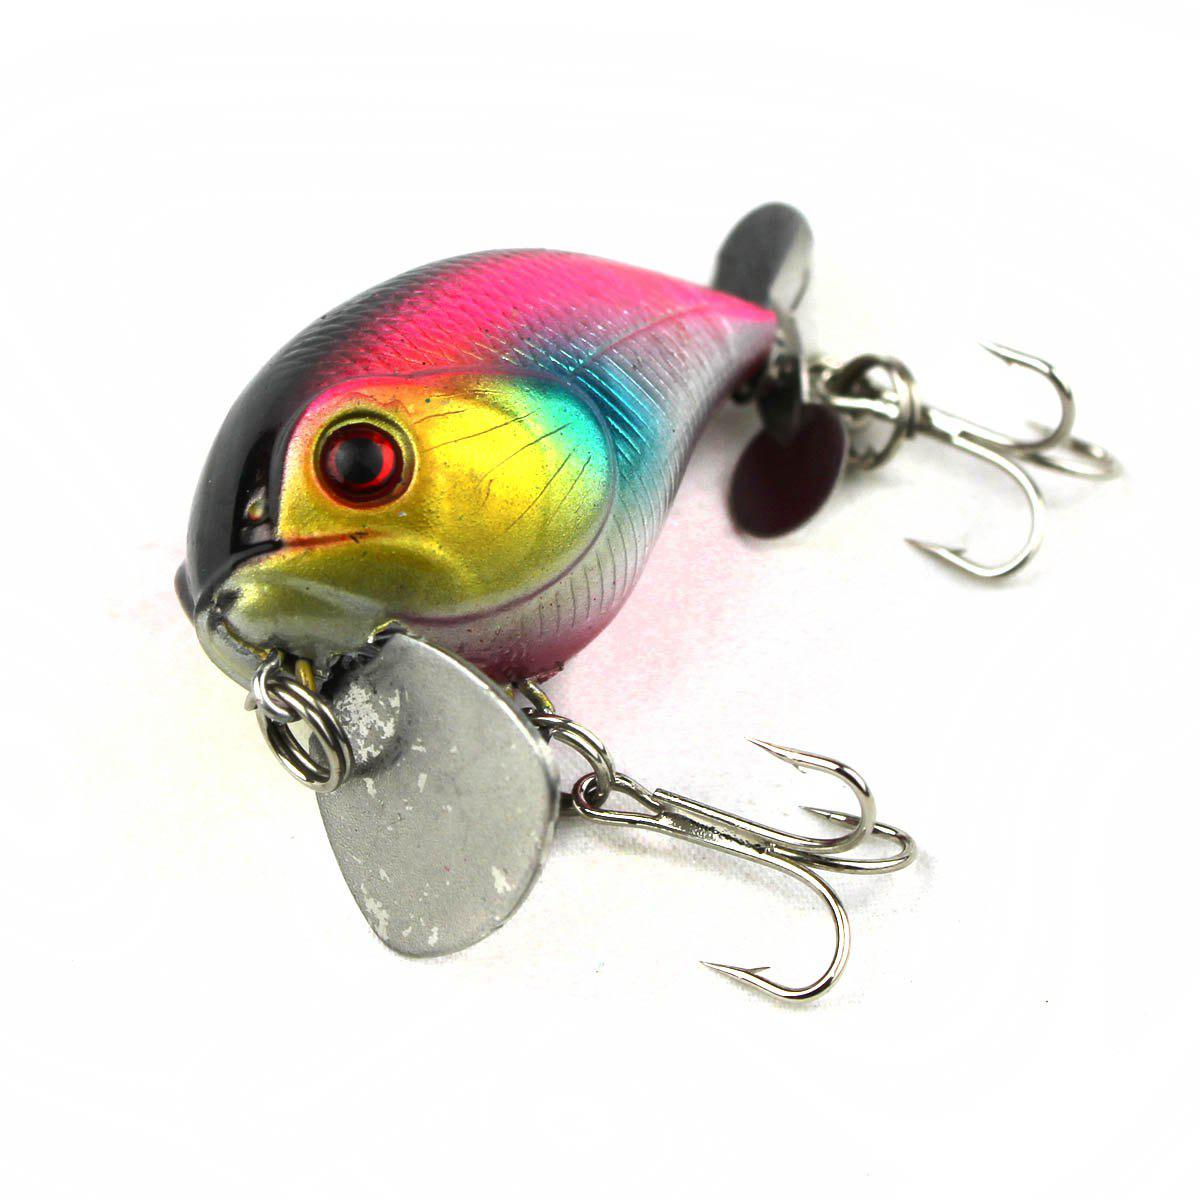 Chubby Hard Fishing Bait with Intron Stainless Steel Ball, As the picture